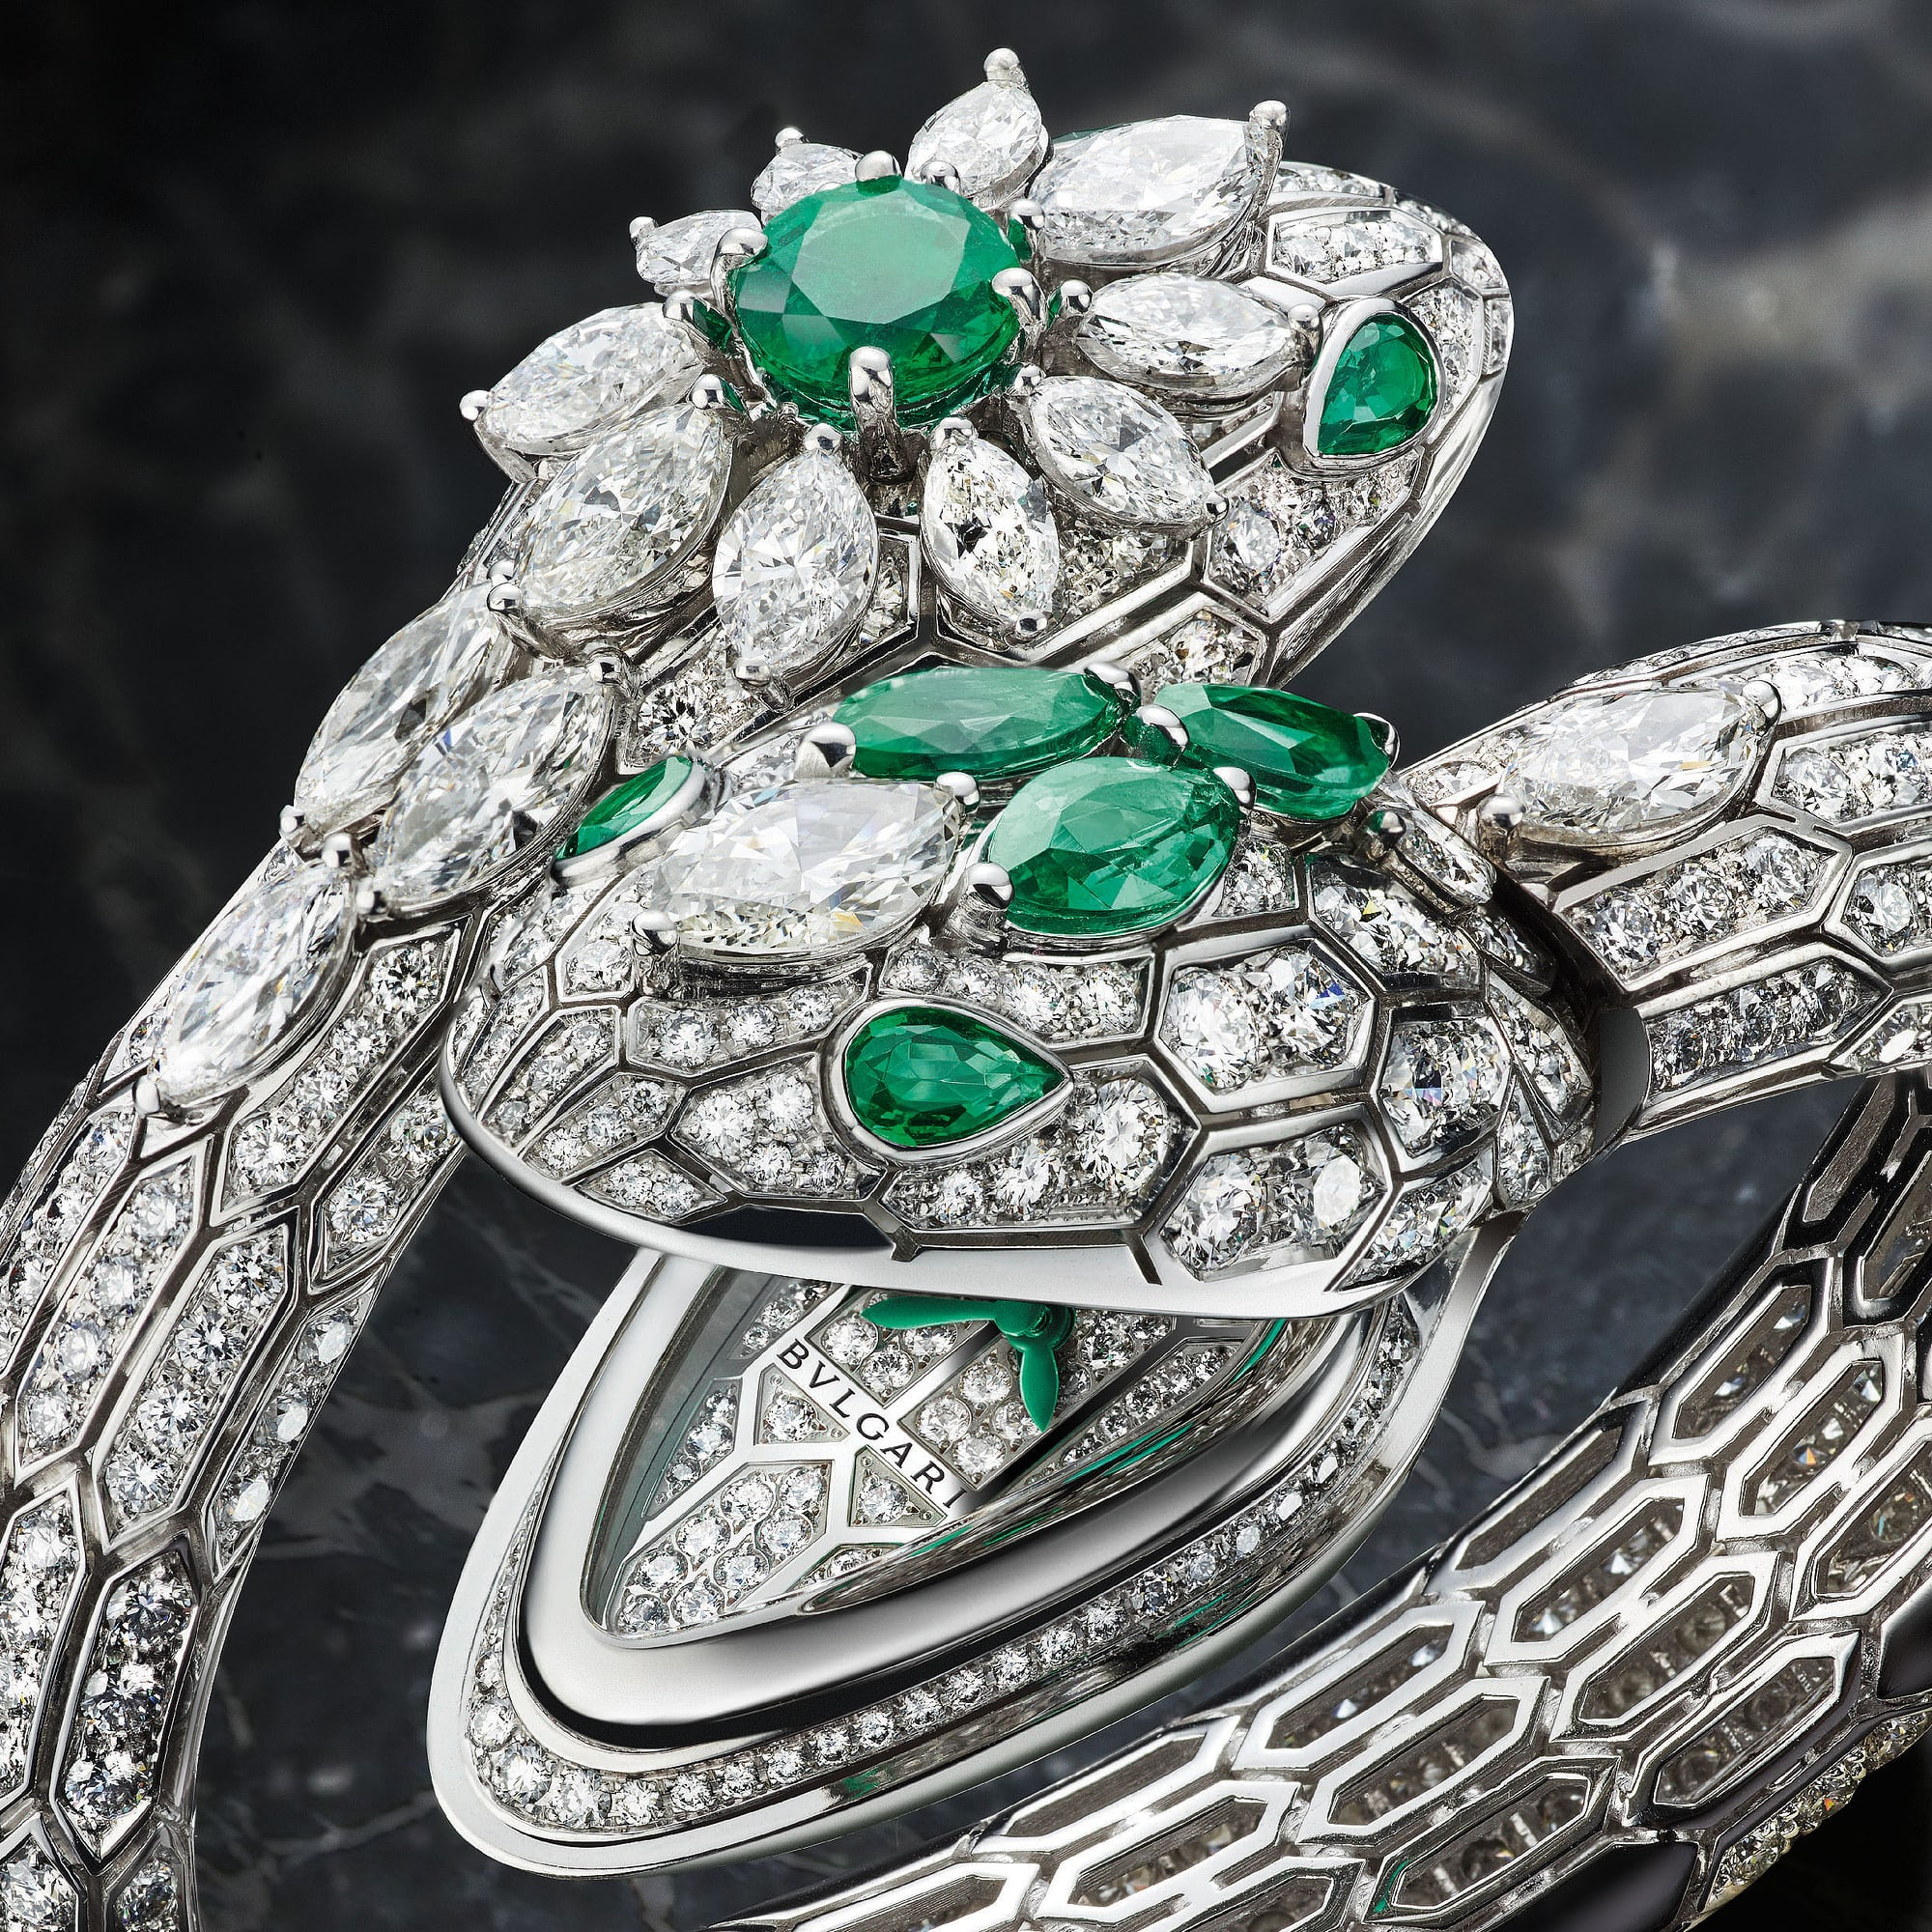 Introducing: The Bulgari Serpenti Misteriosi Introducing: The Bulgari Serpenti Misteriosi Bulgari Detail